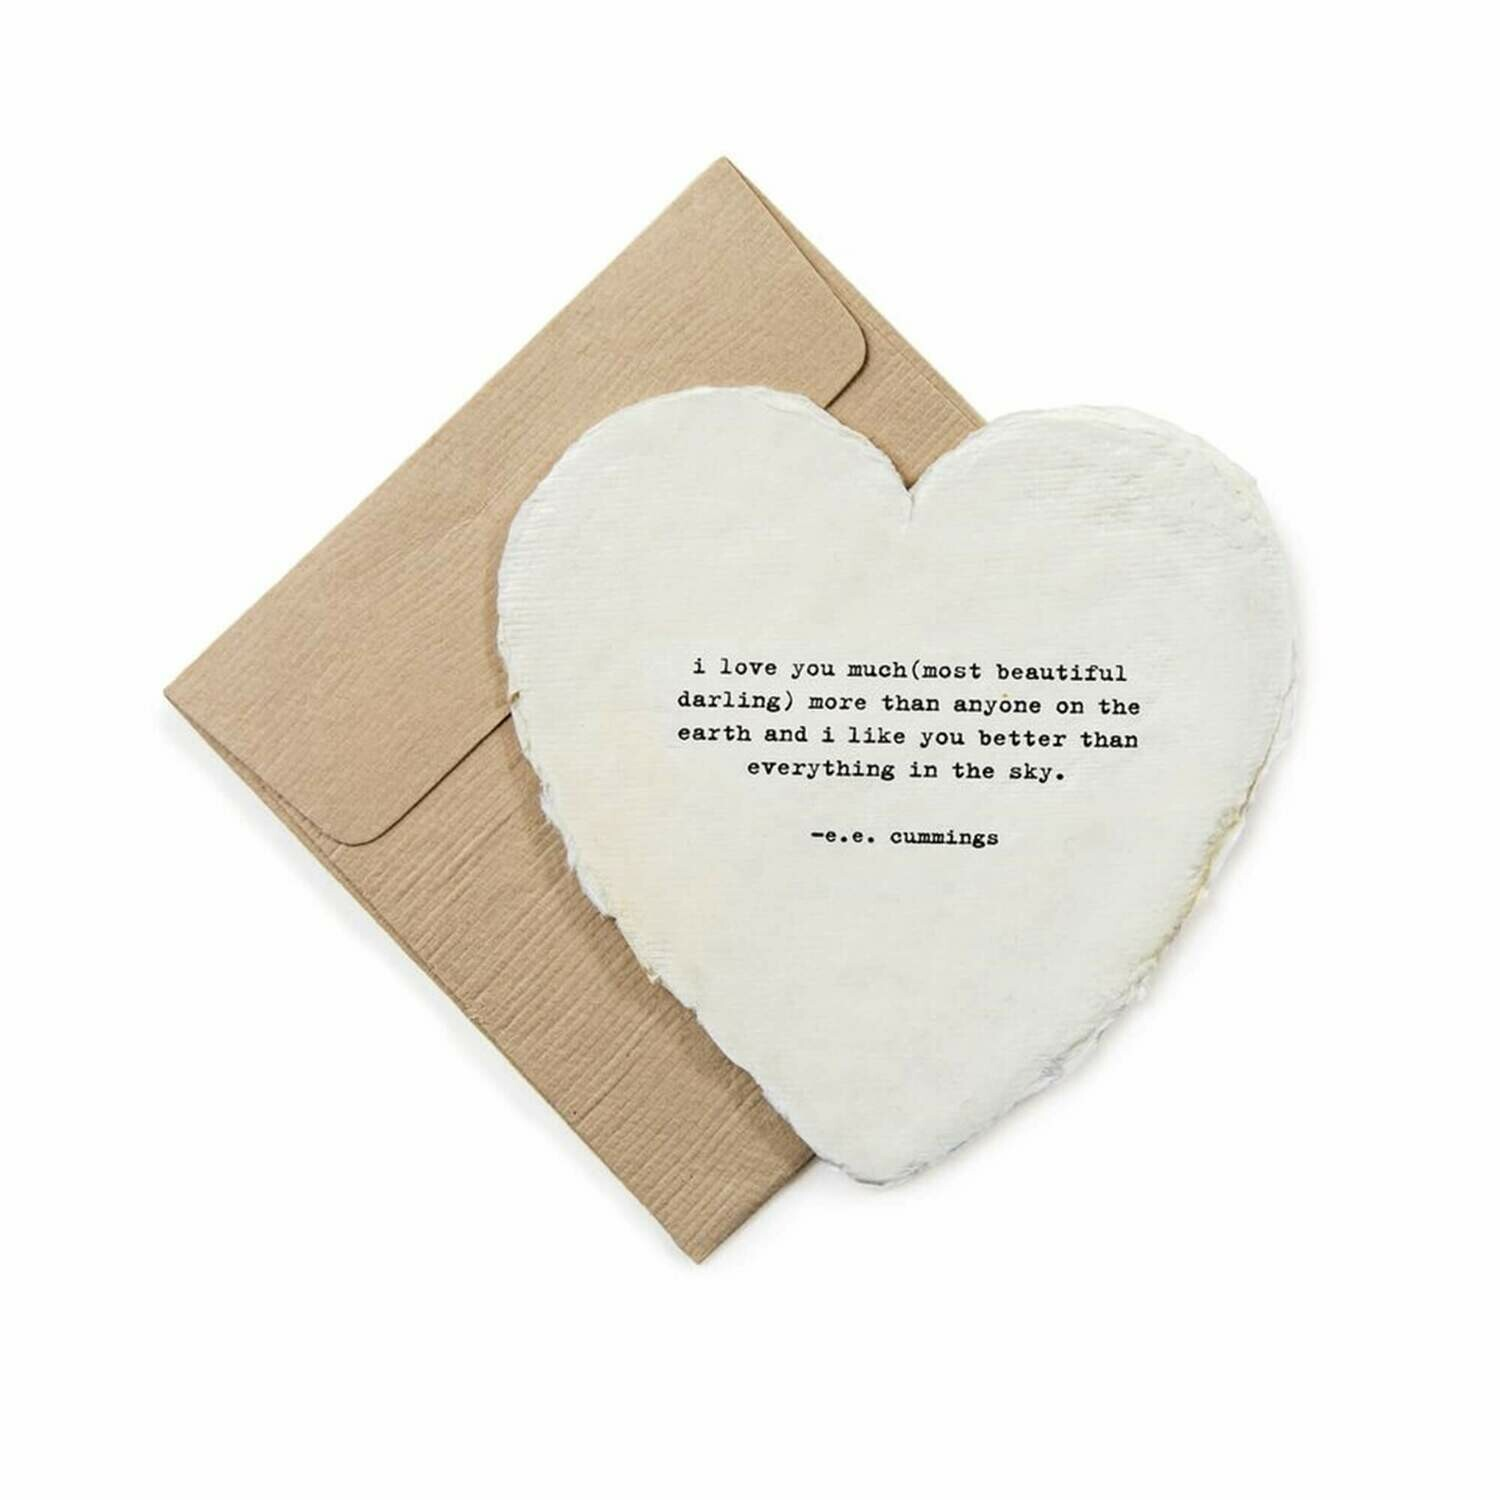 Mini Heart Shaped Card & Envelope-i love you much (most beautiful darling)